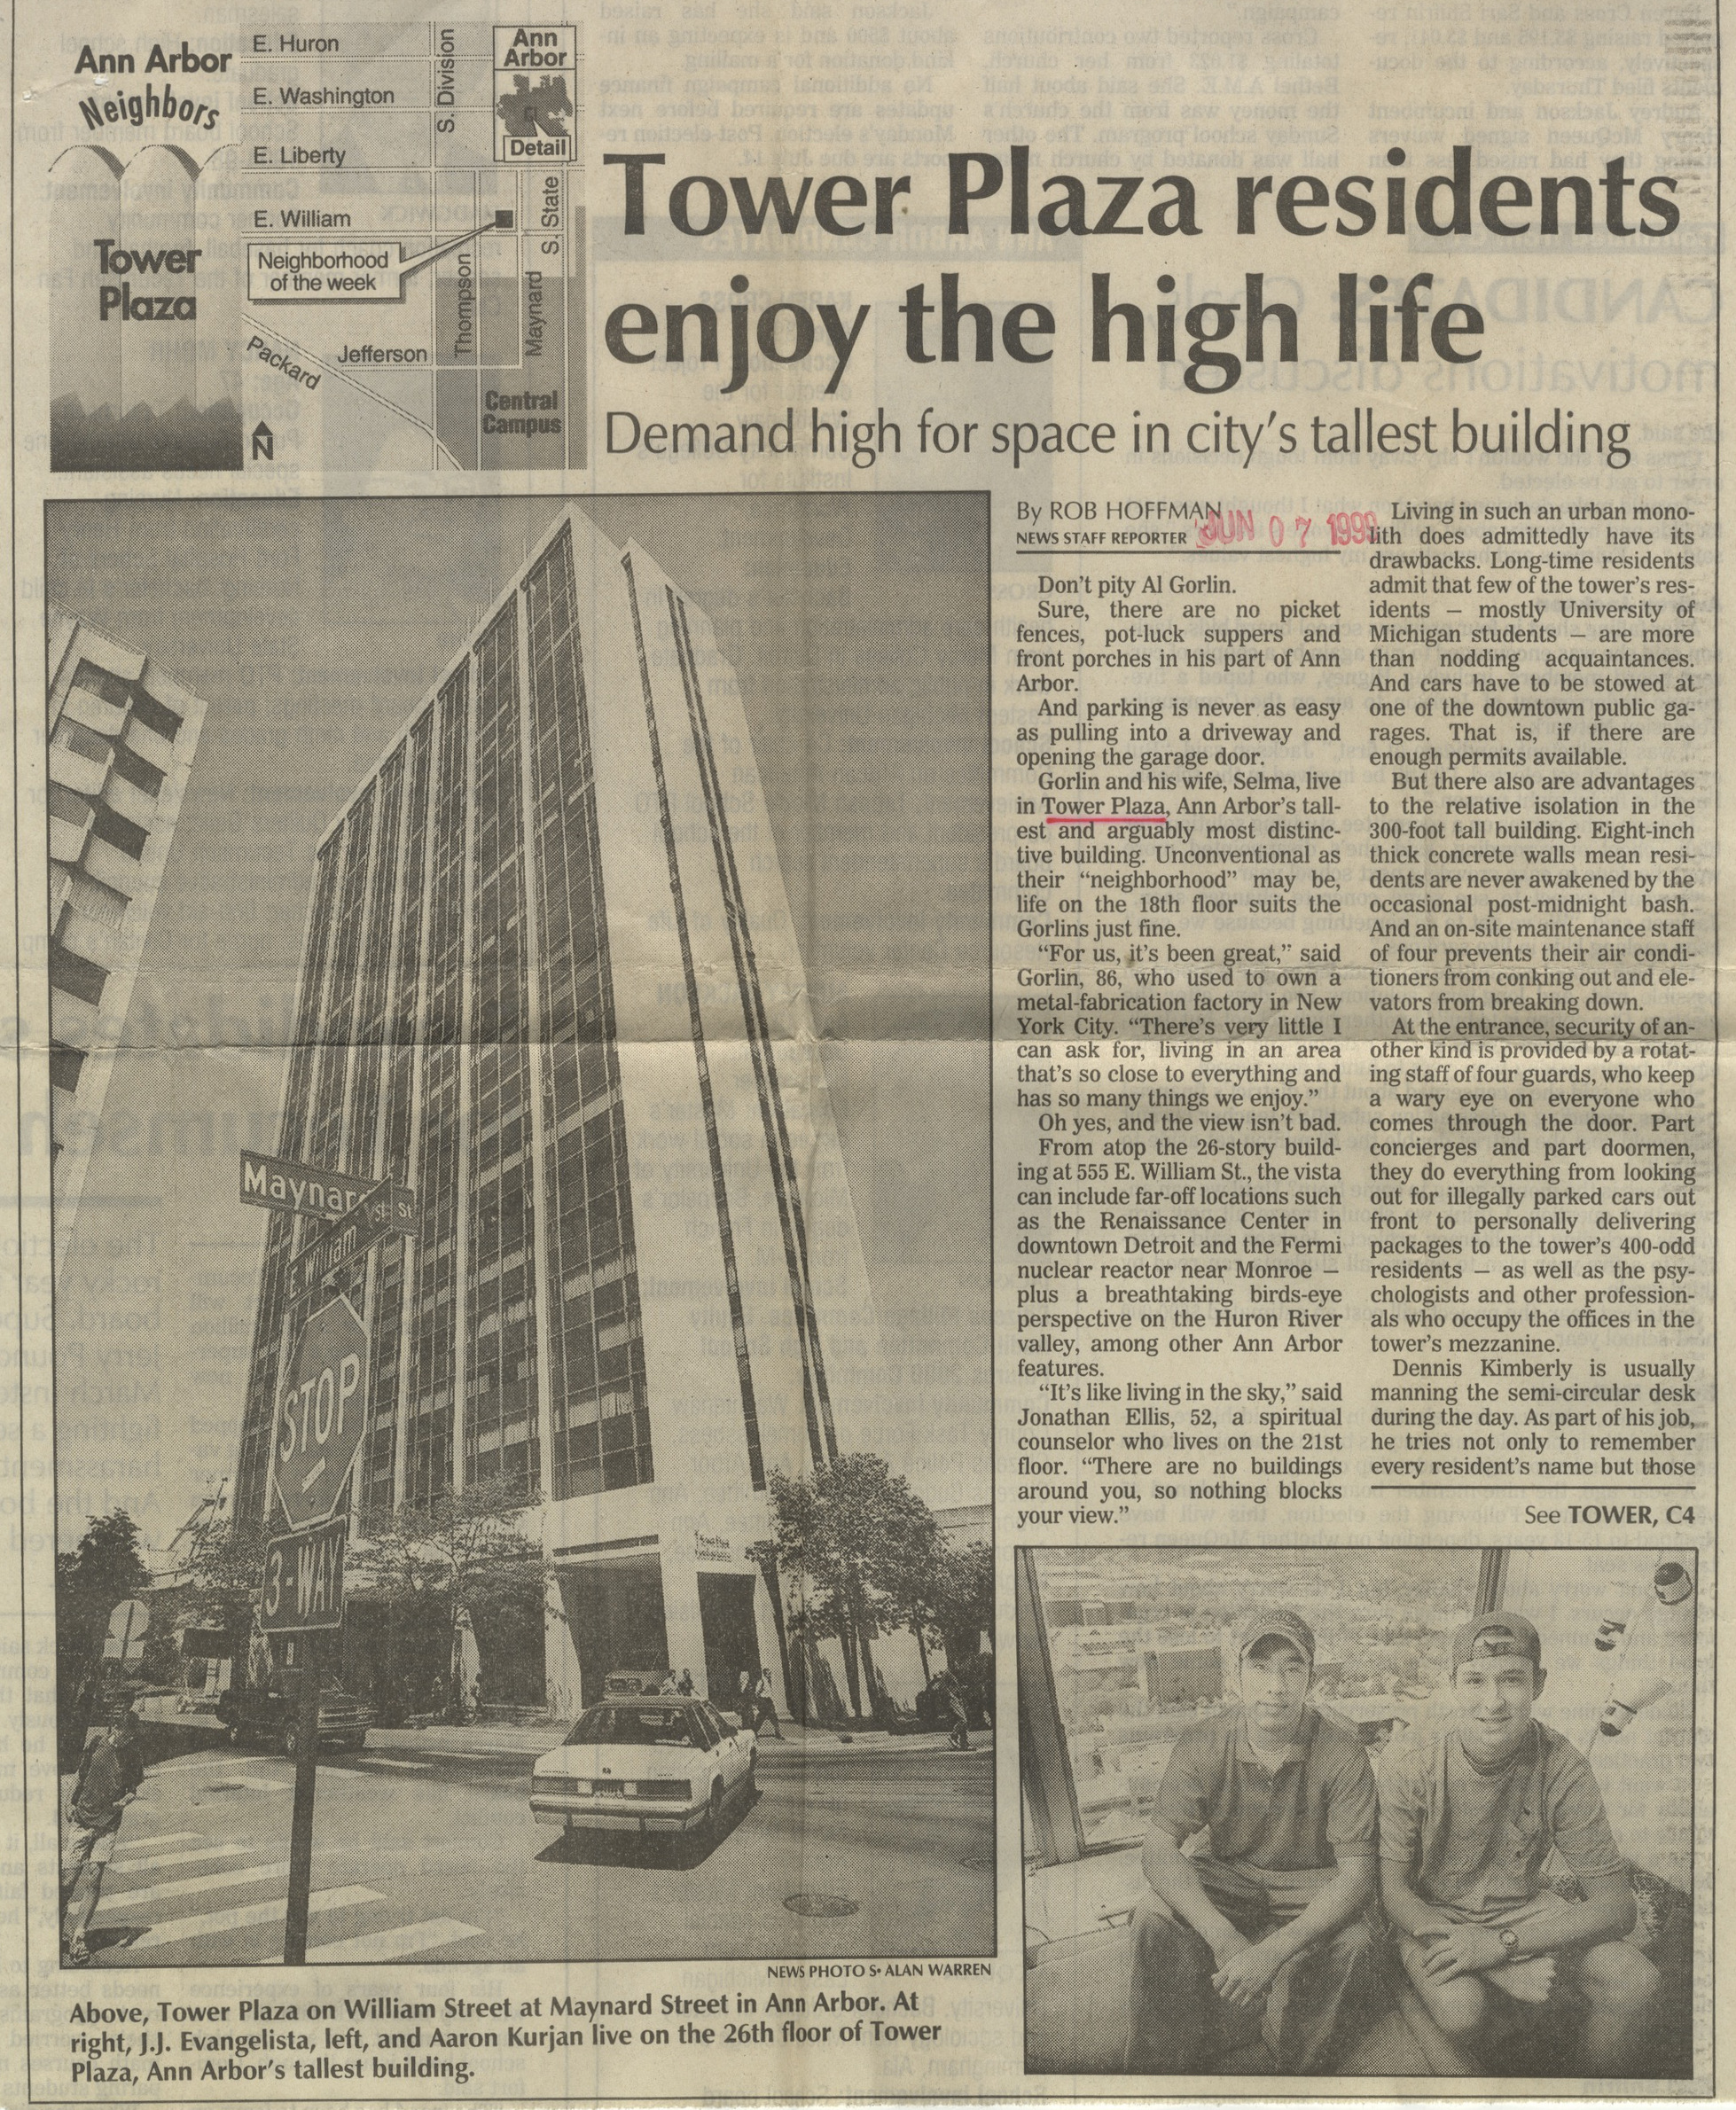 Tower Plaza Residents Enjoy The High Life image